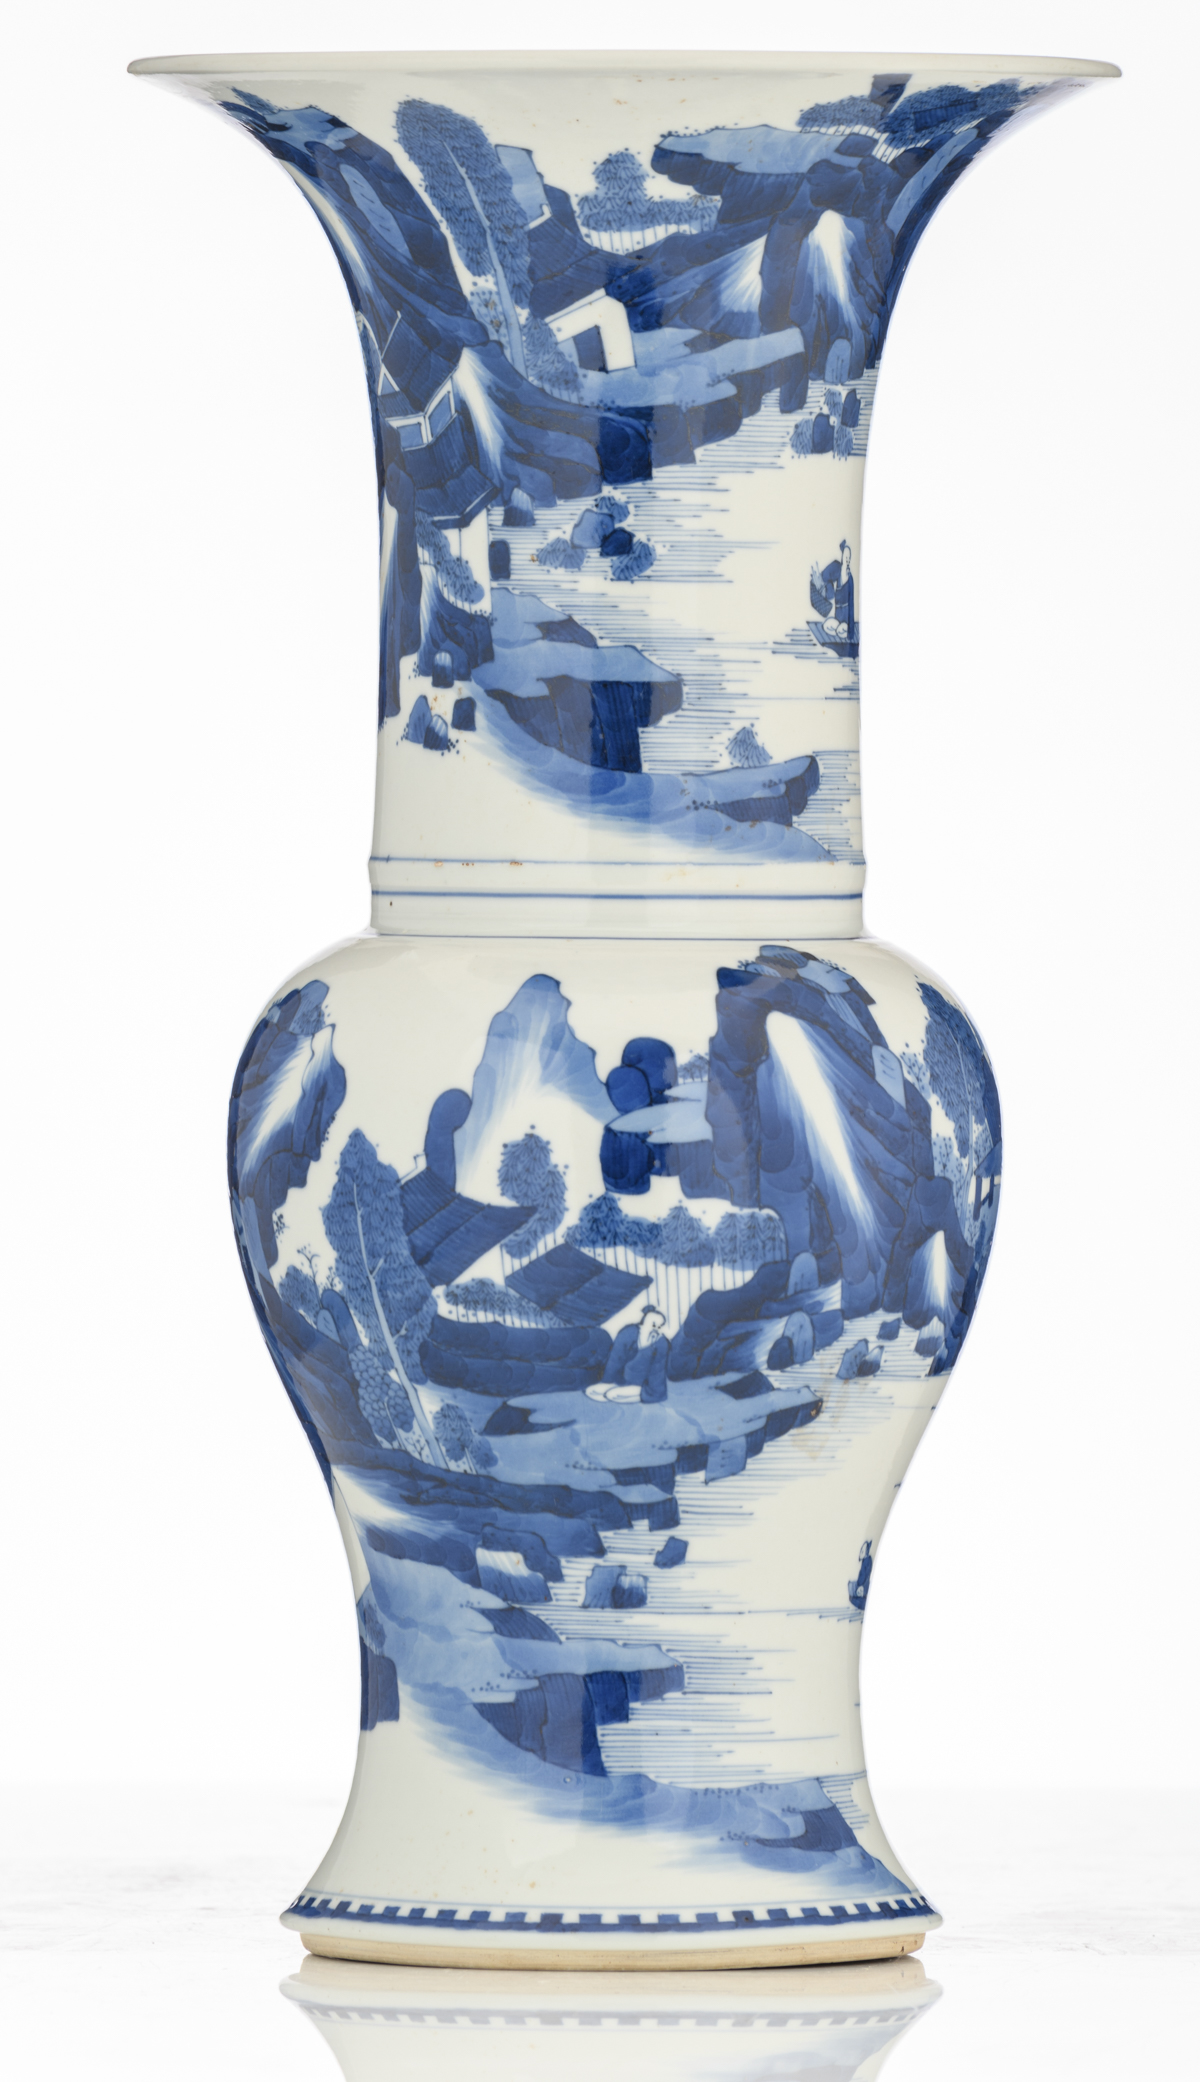 Lot 55 - A Chinese blue and white yenyen vase, decorated with figures in a river landscape, with a Chenghua